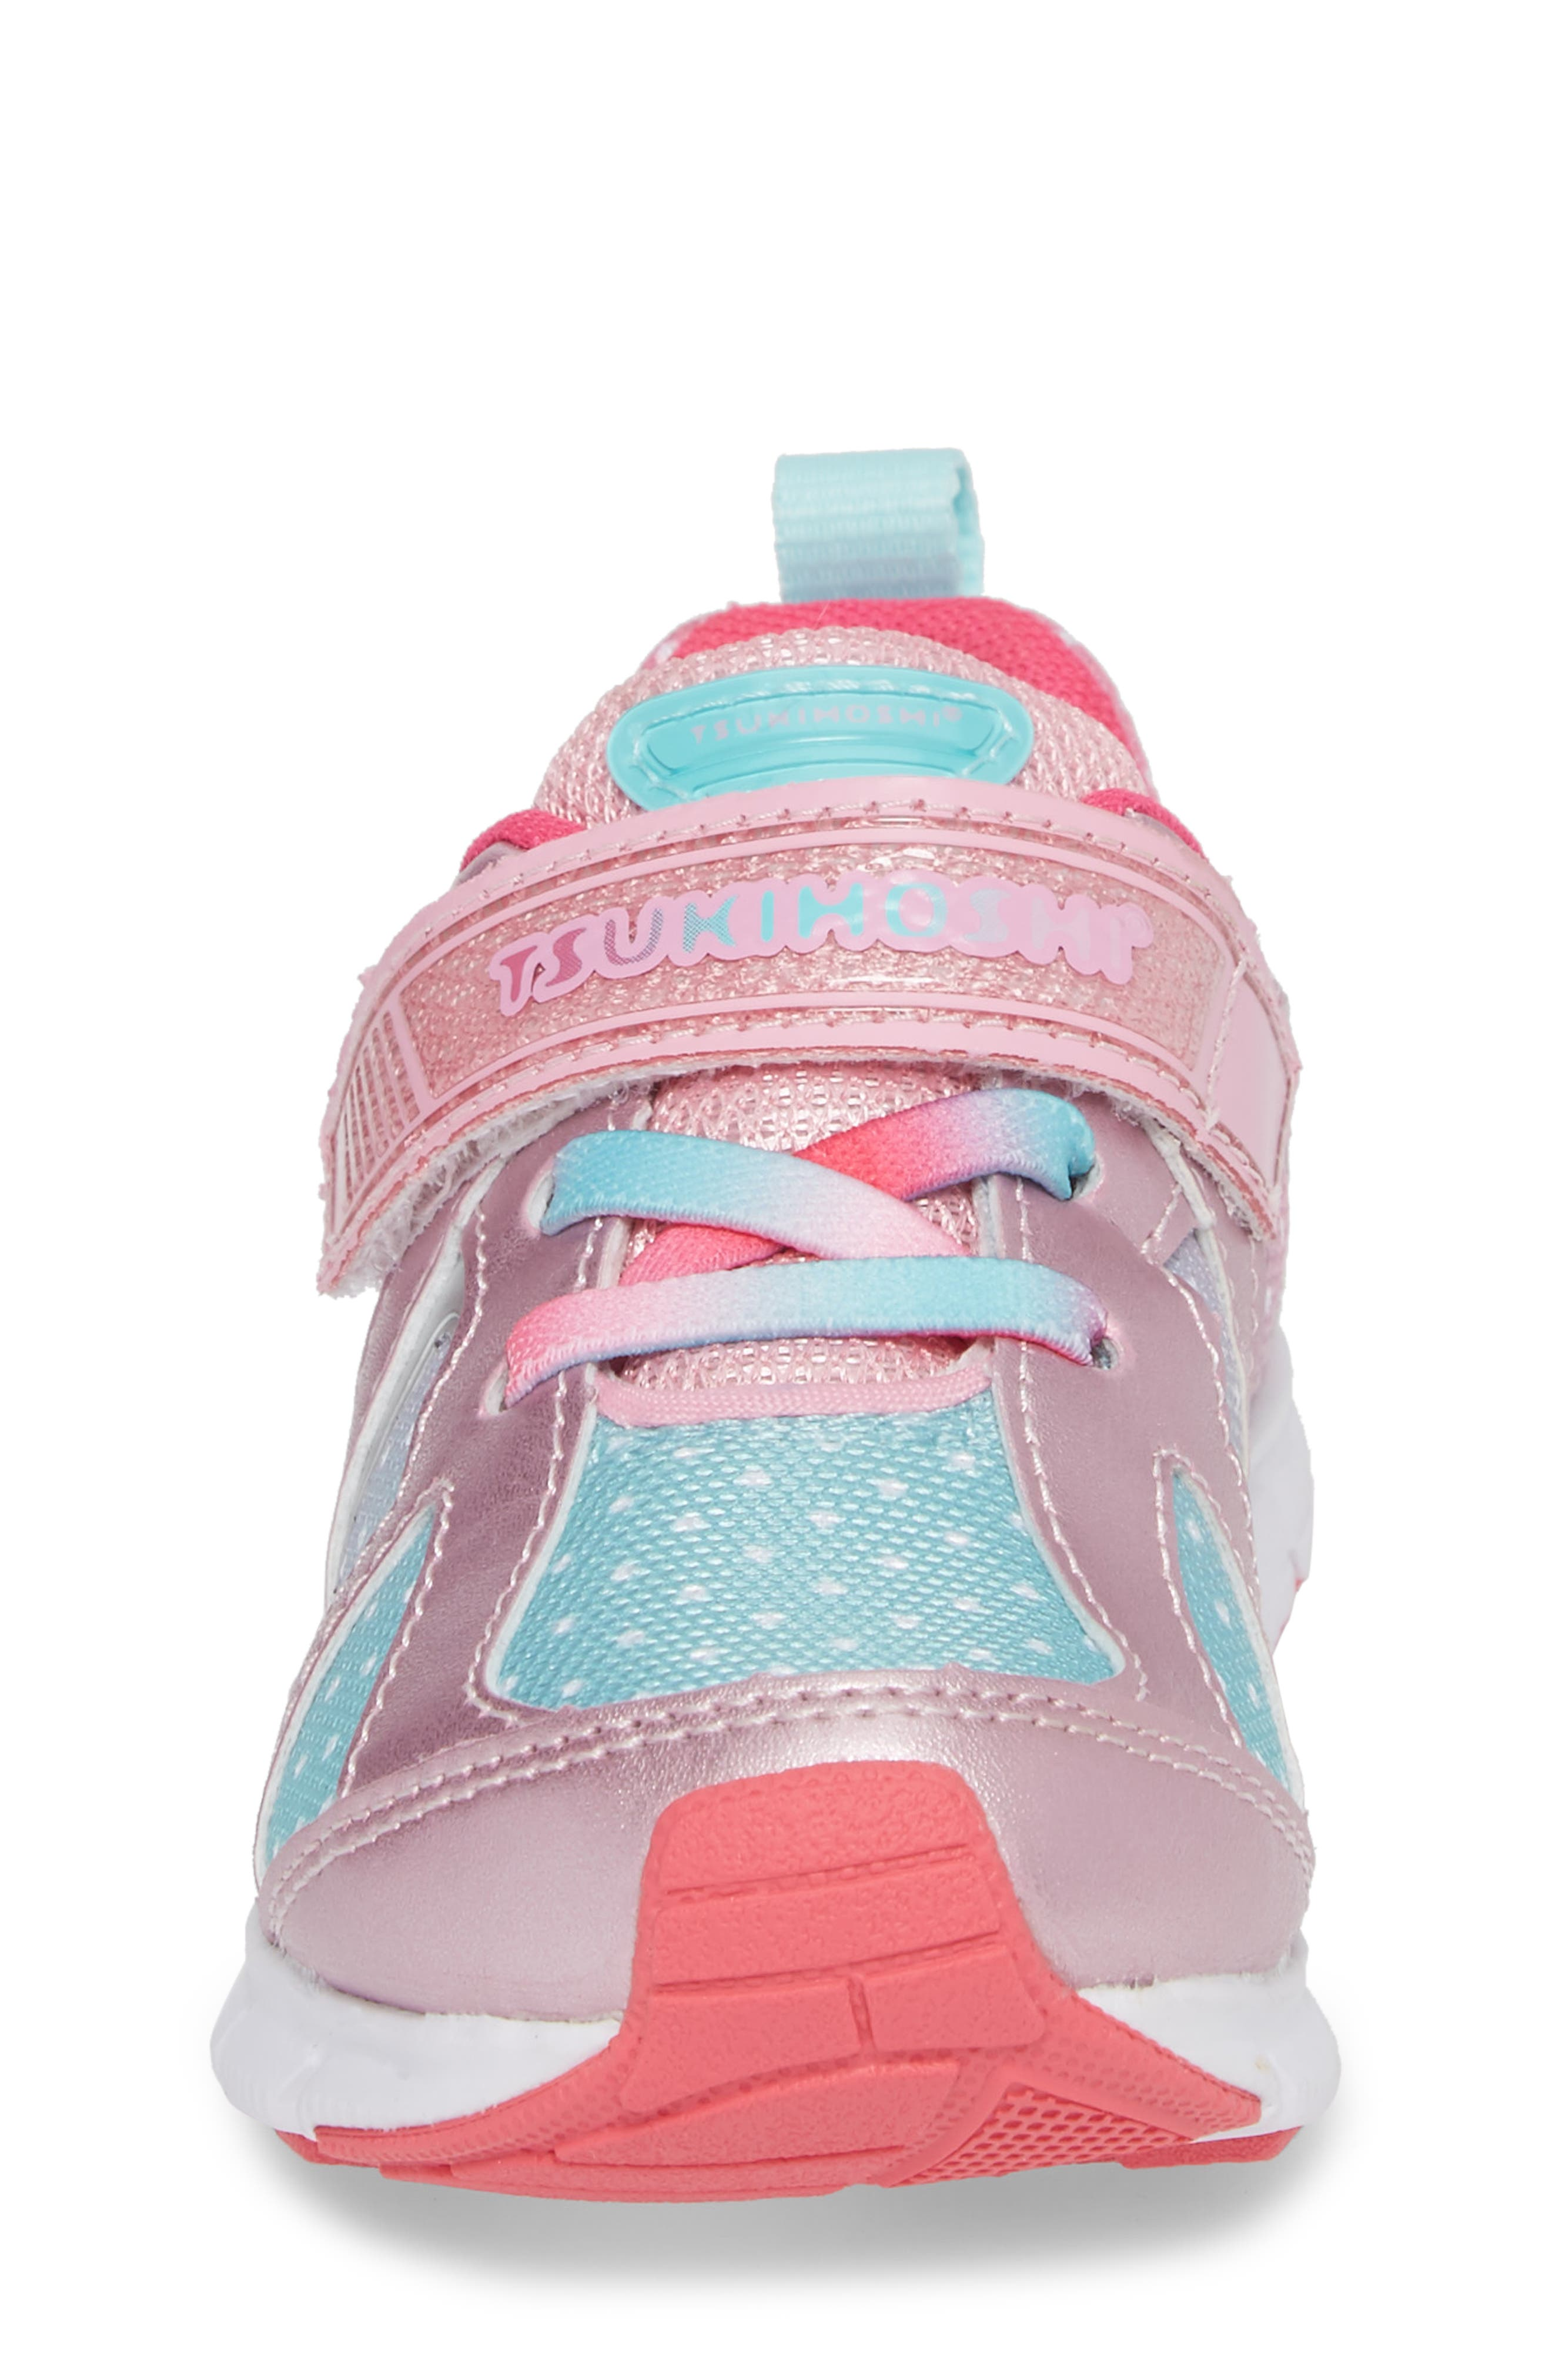 TSUKIHOSHI, Rainbow Washable Sneaker, Alternate thumbnail 4, color, ROSE/ MINT